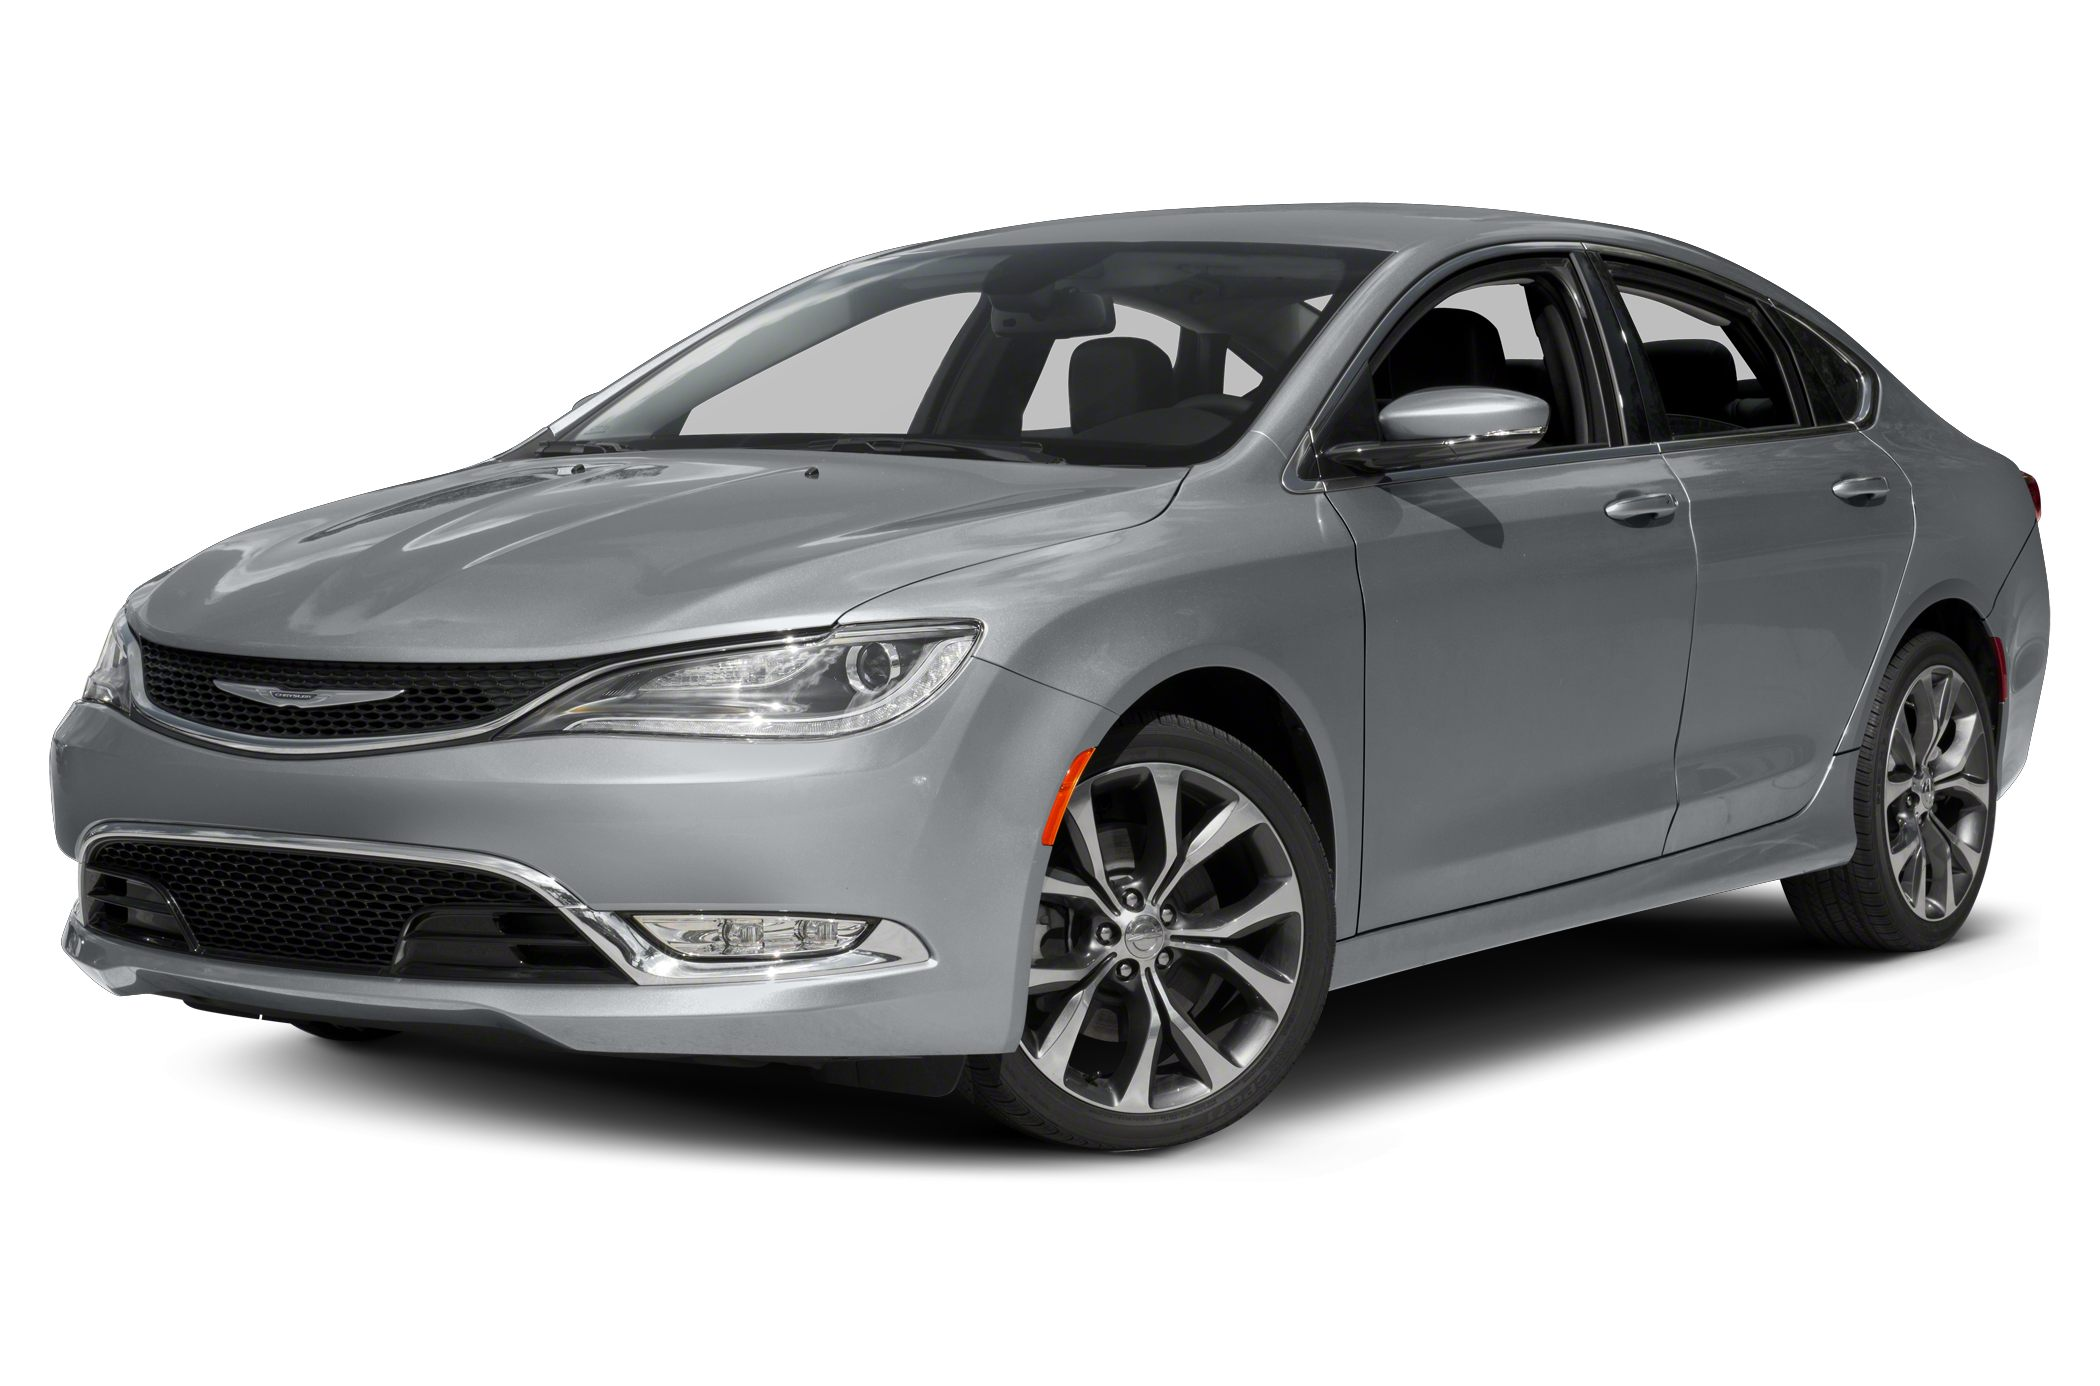 2017 Chrysler 200 Reviews Specs And Prices Cars Com